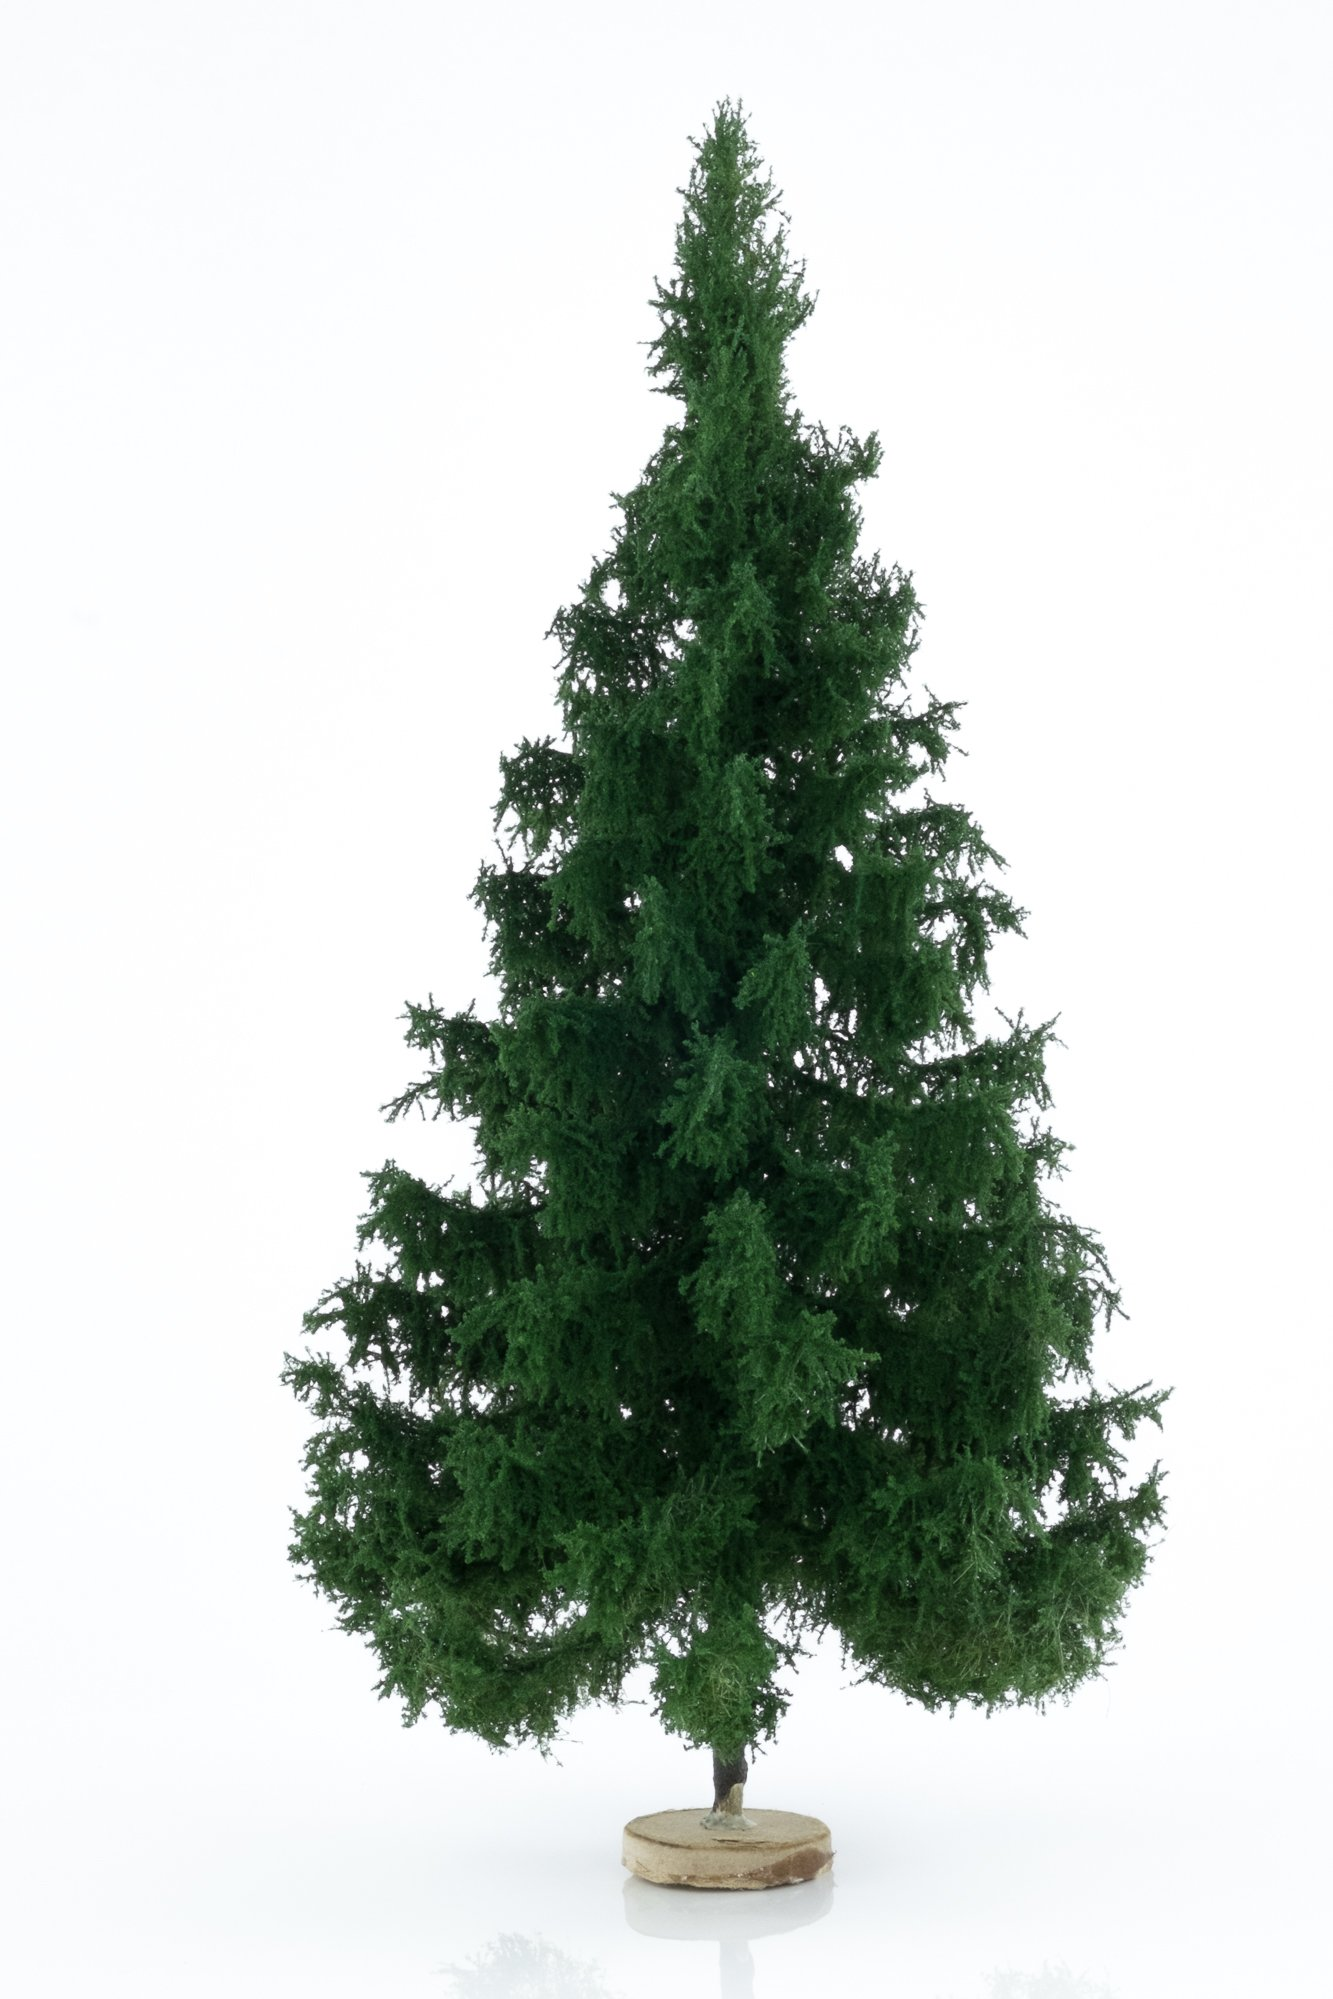 Hand-made, green, spruce tree model. Size between 26 and 28 cm. Made from high quality model supplies by Primo Models.